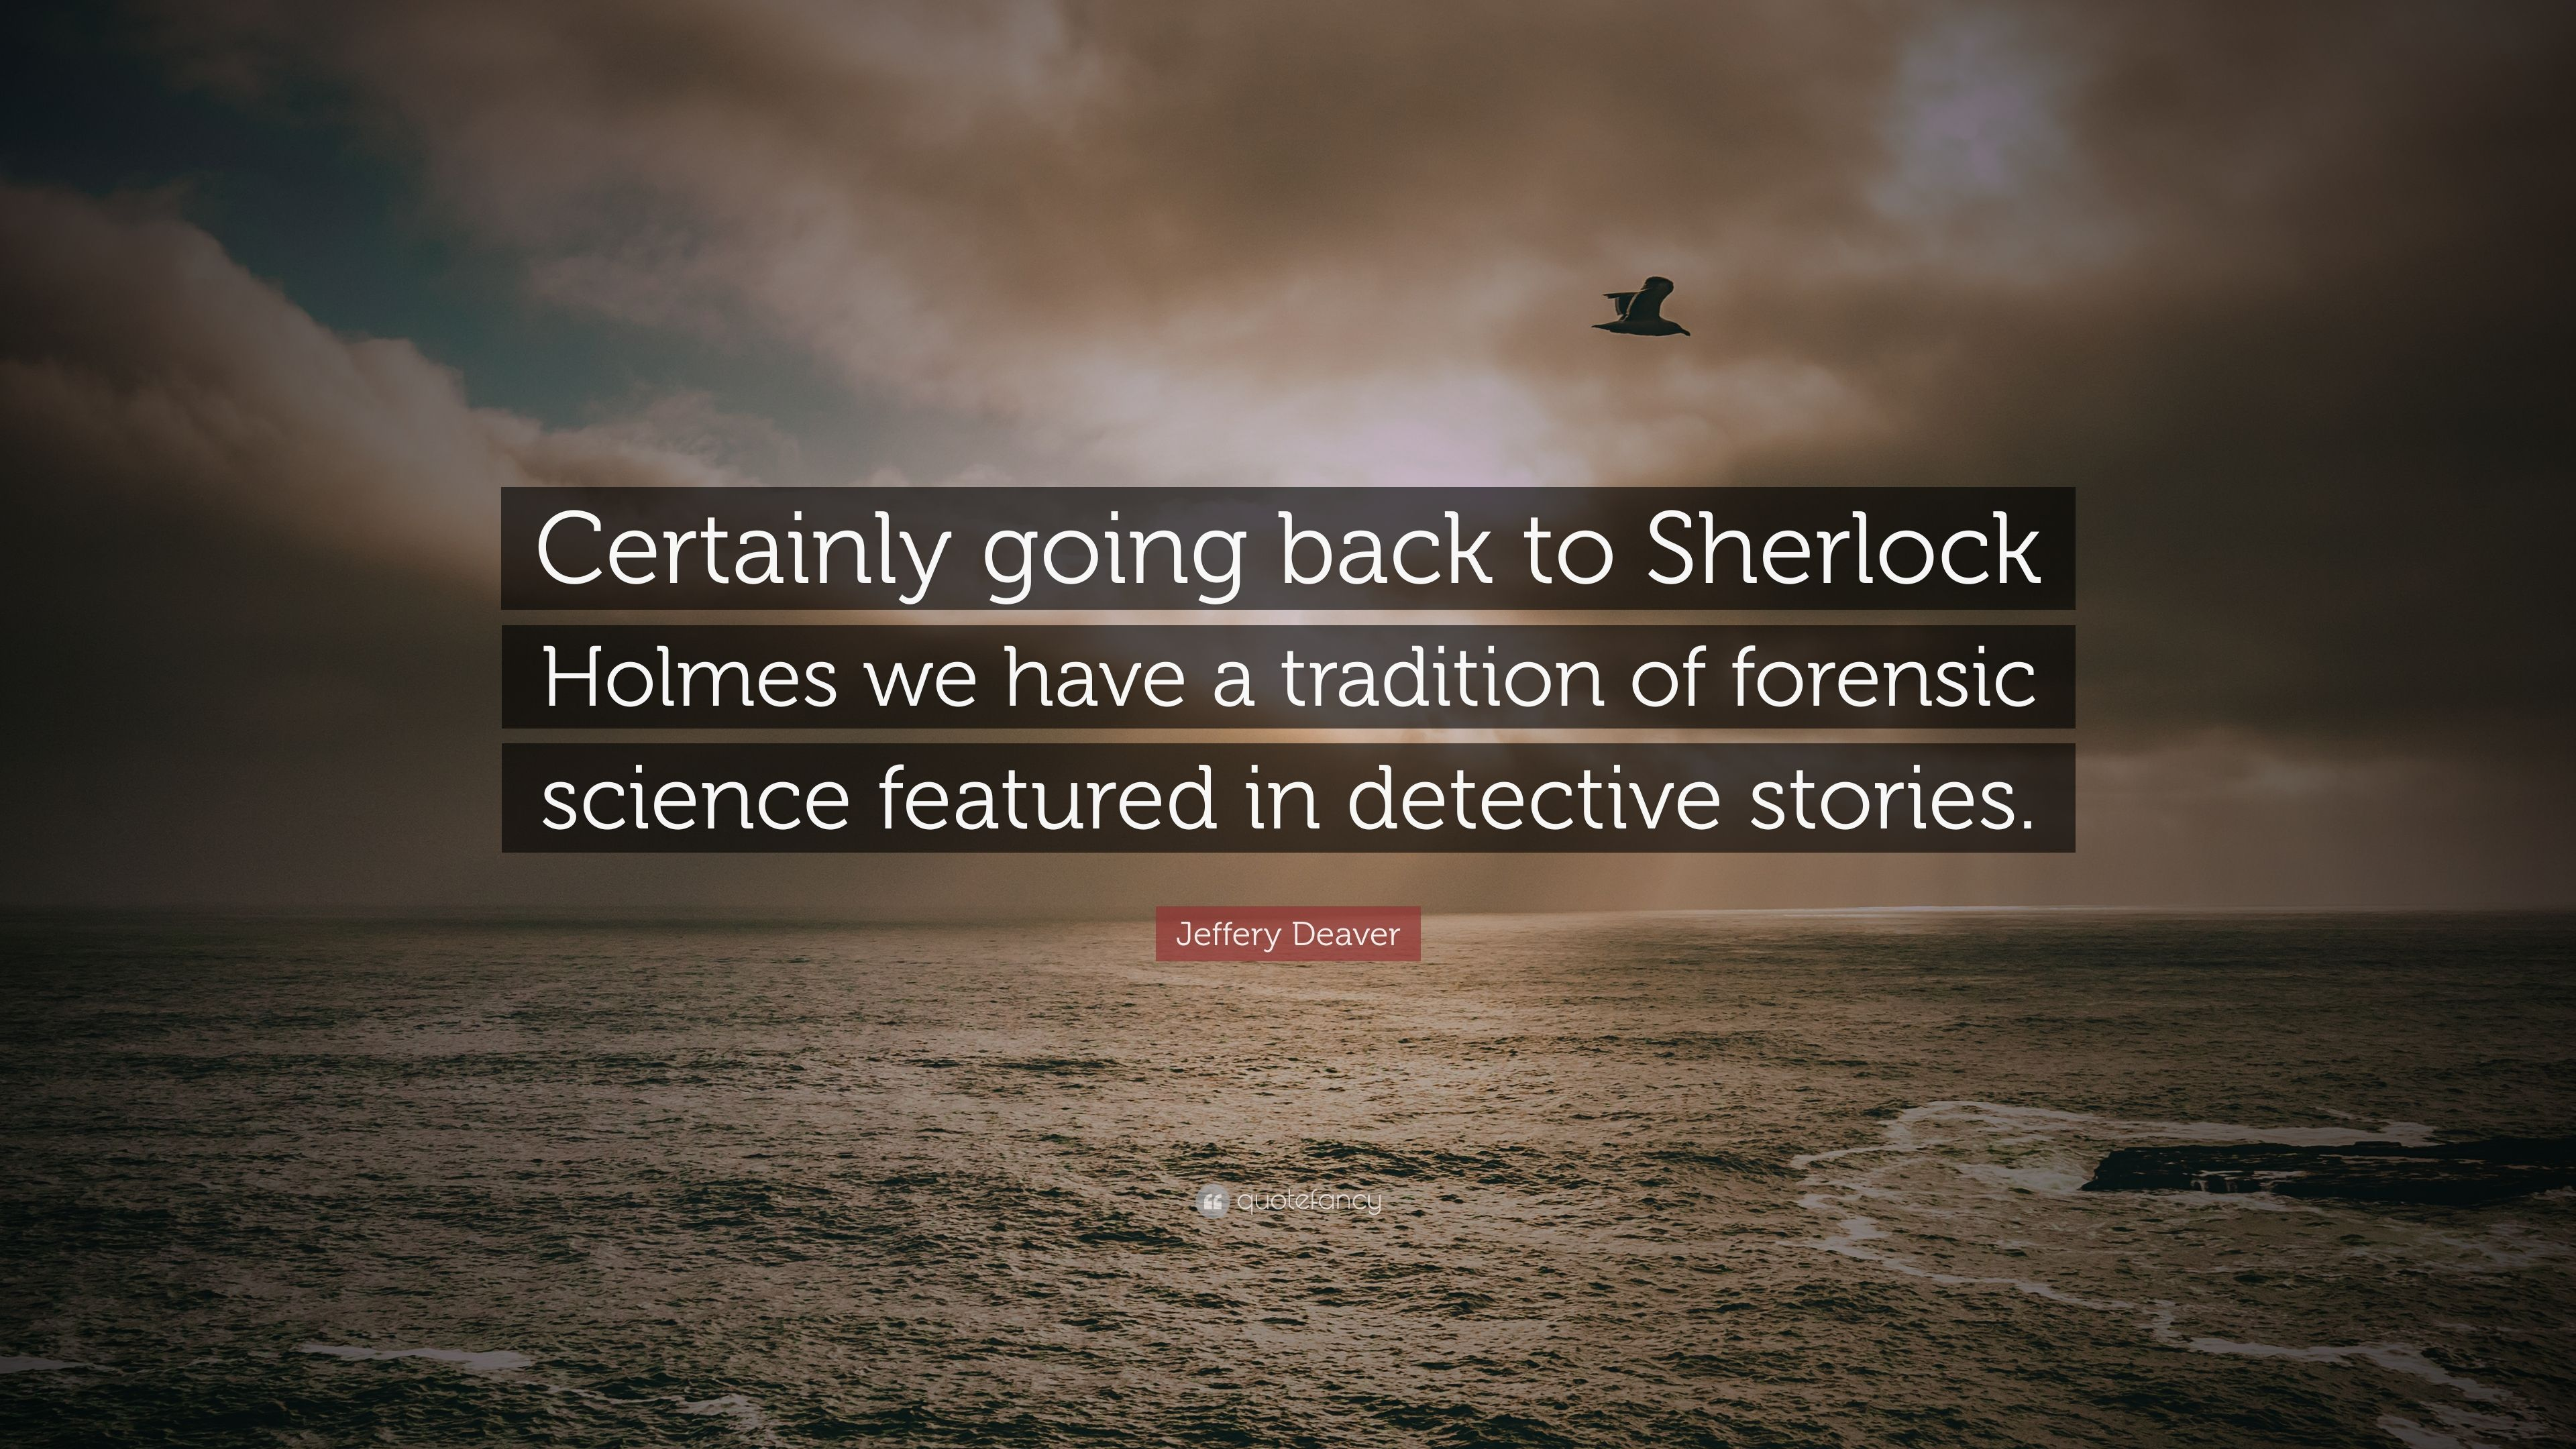 Jeffery Deaver Quote Certainly Going Back To Sherlock Holmes We Have A Tradition Of Forensic Science Featured In Detective Stories 7 Wallpapers Quotefancy